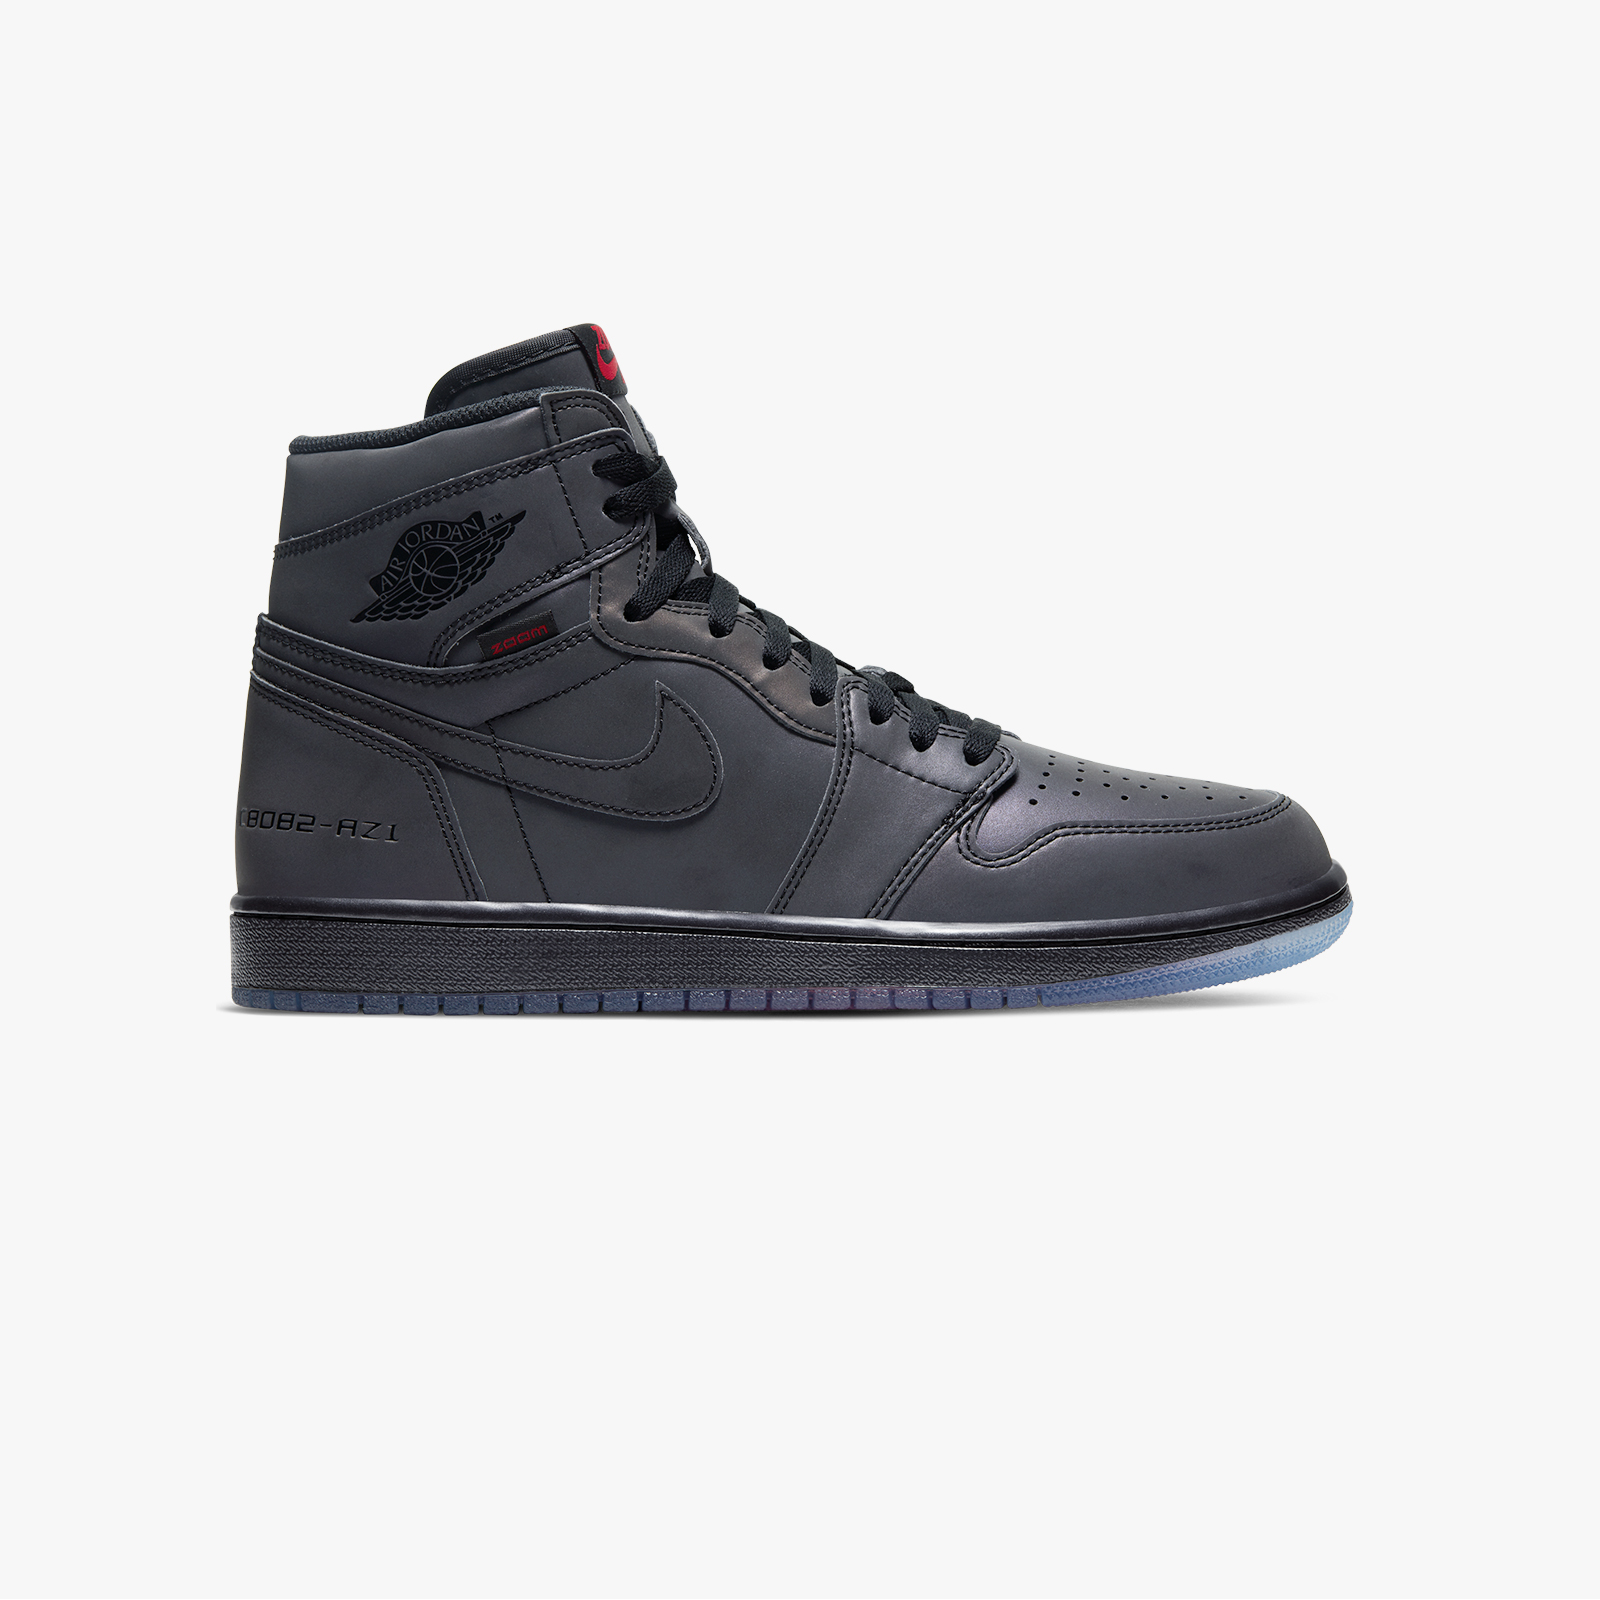 Jordan Brand Air Jordan 1 High Zoom Fearless Bv0006 900